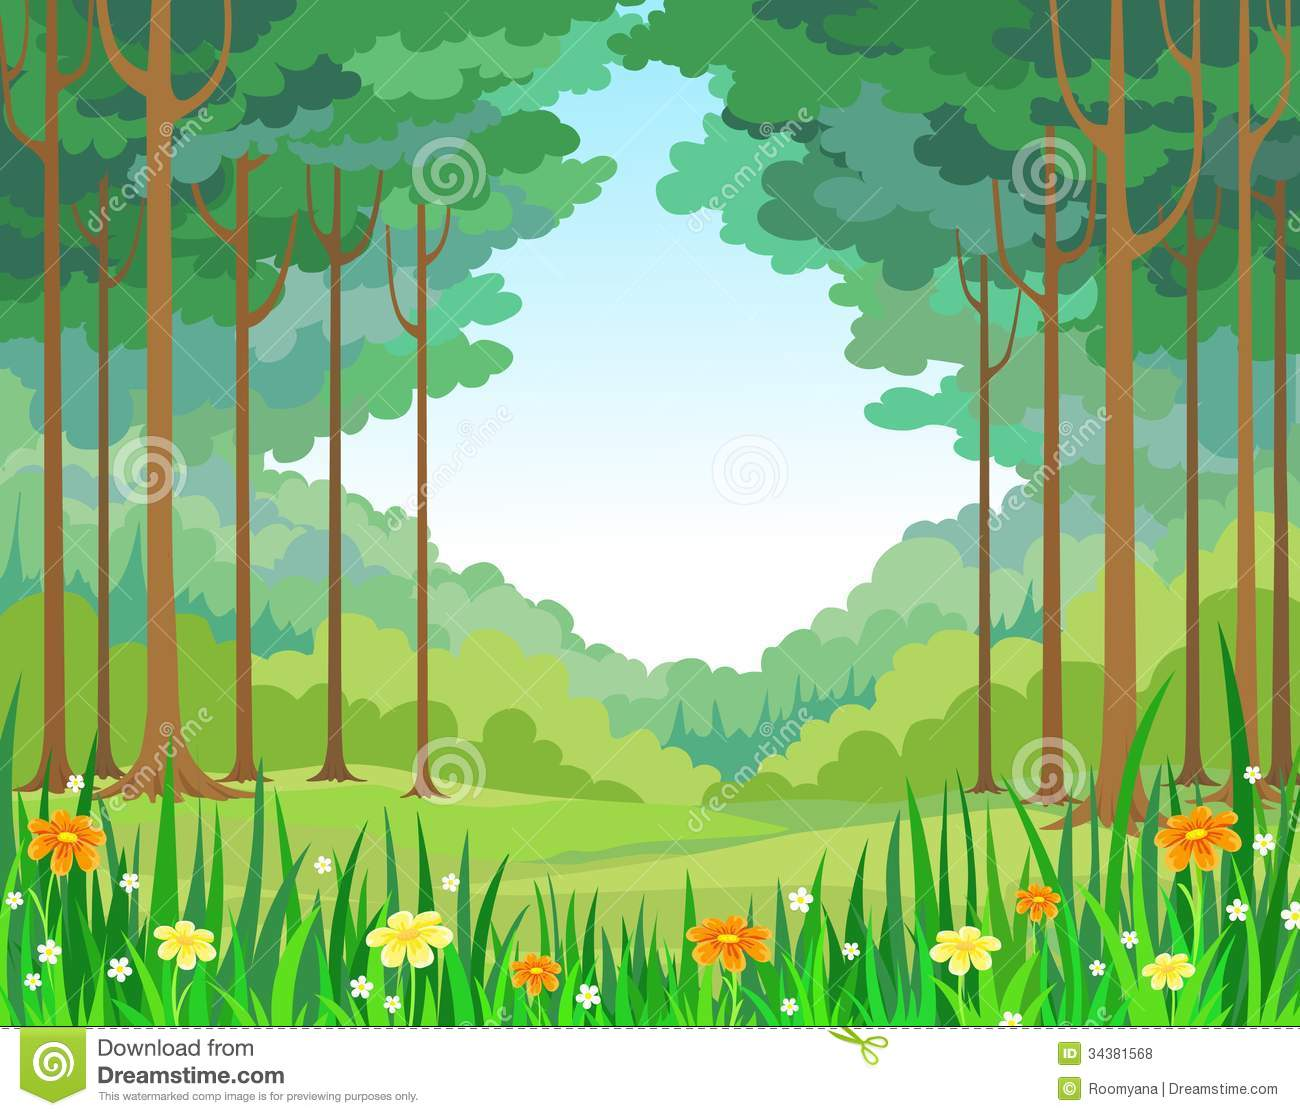 Forest Clipart & Forest Clip Art Images.